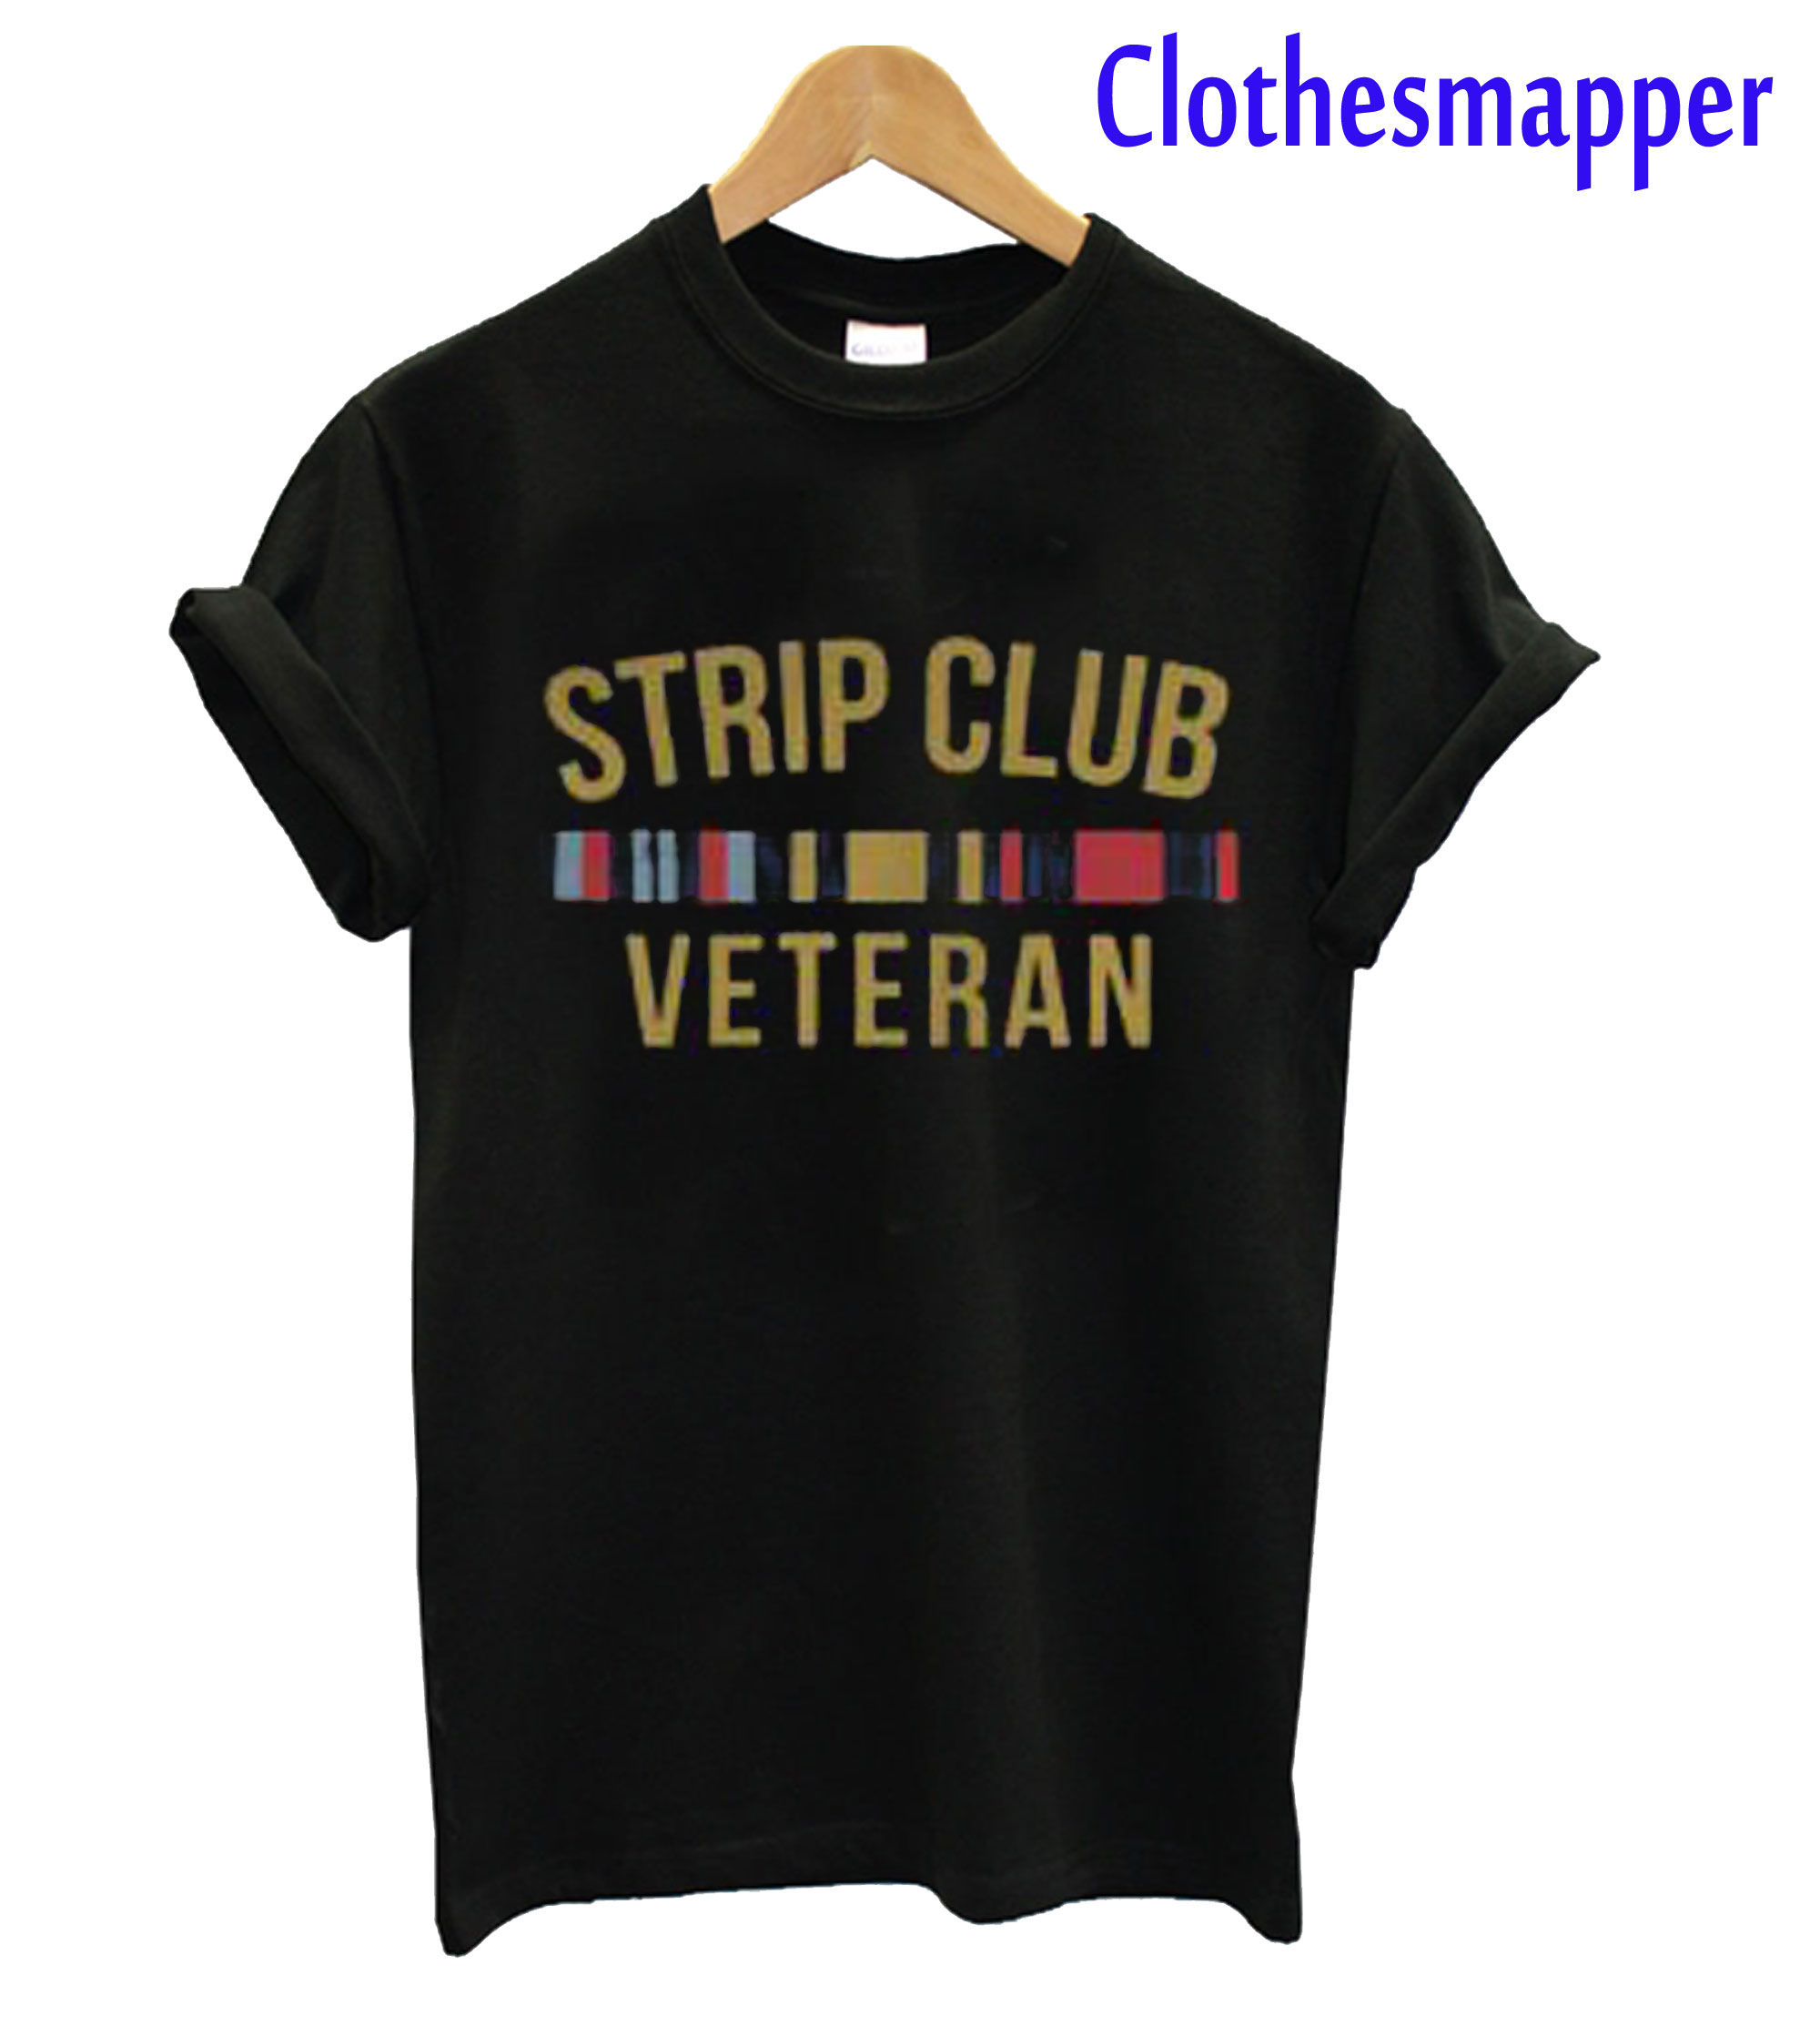 Strip Club Veteran T-Shirt